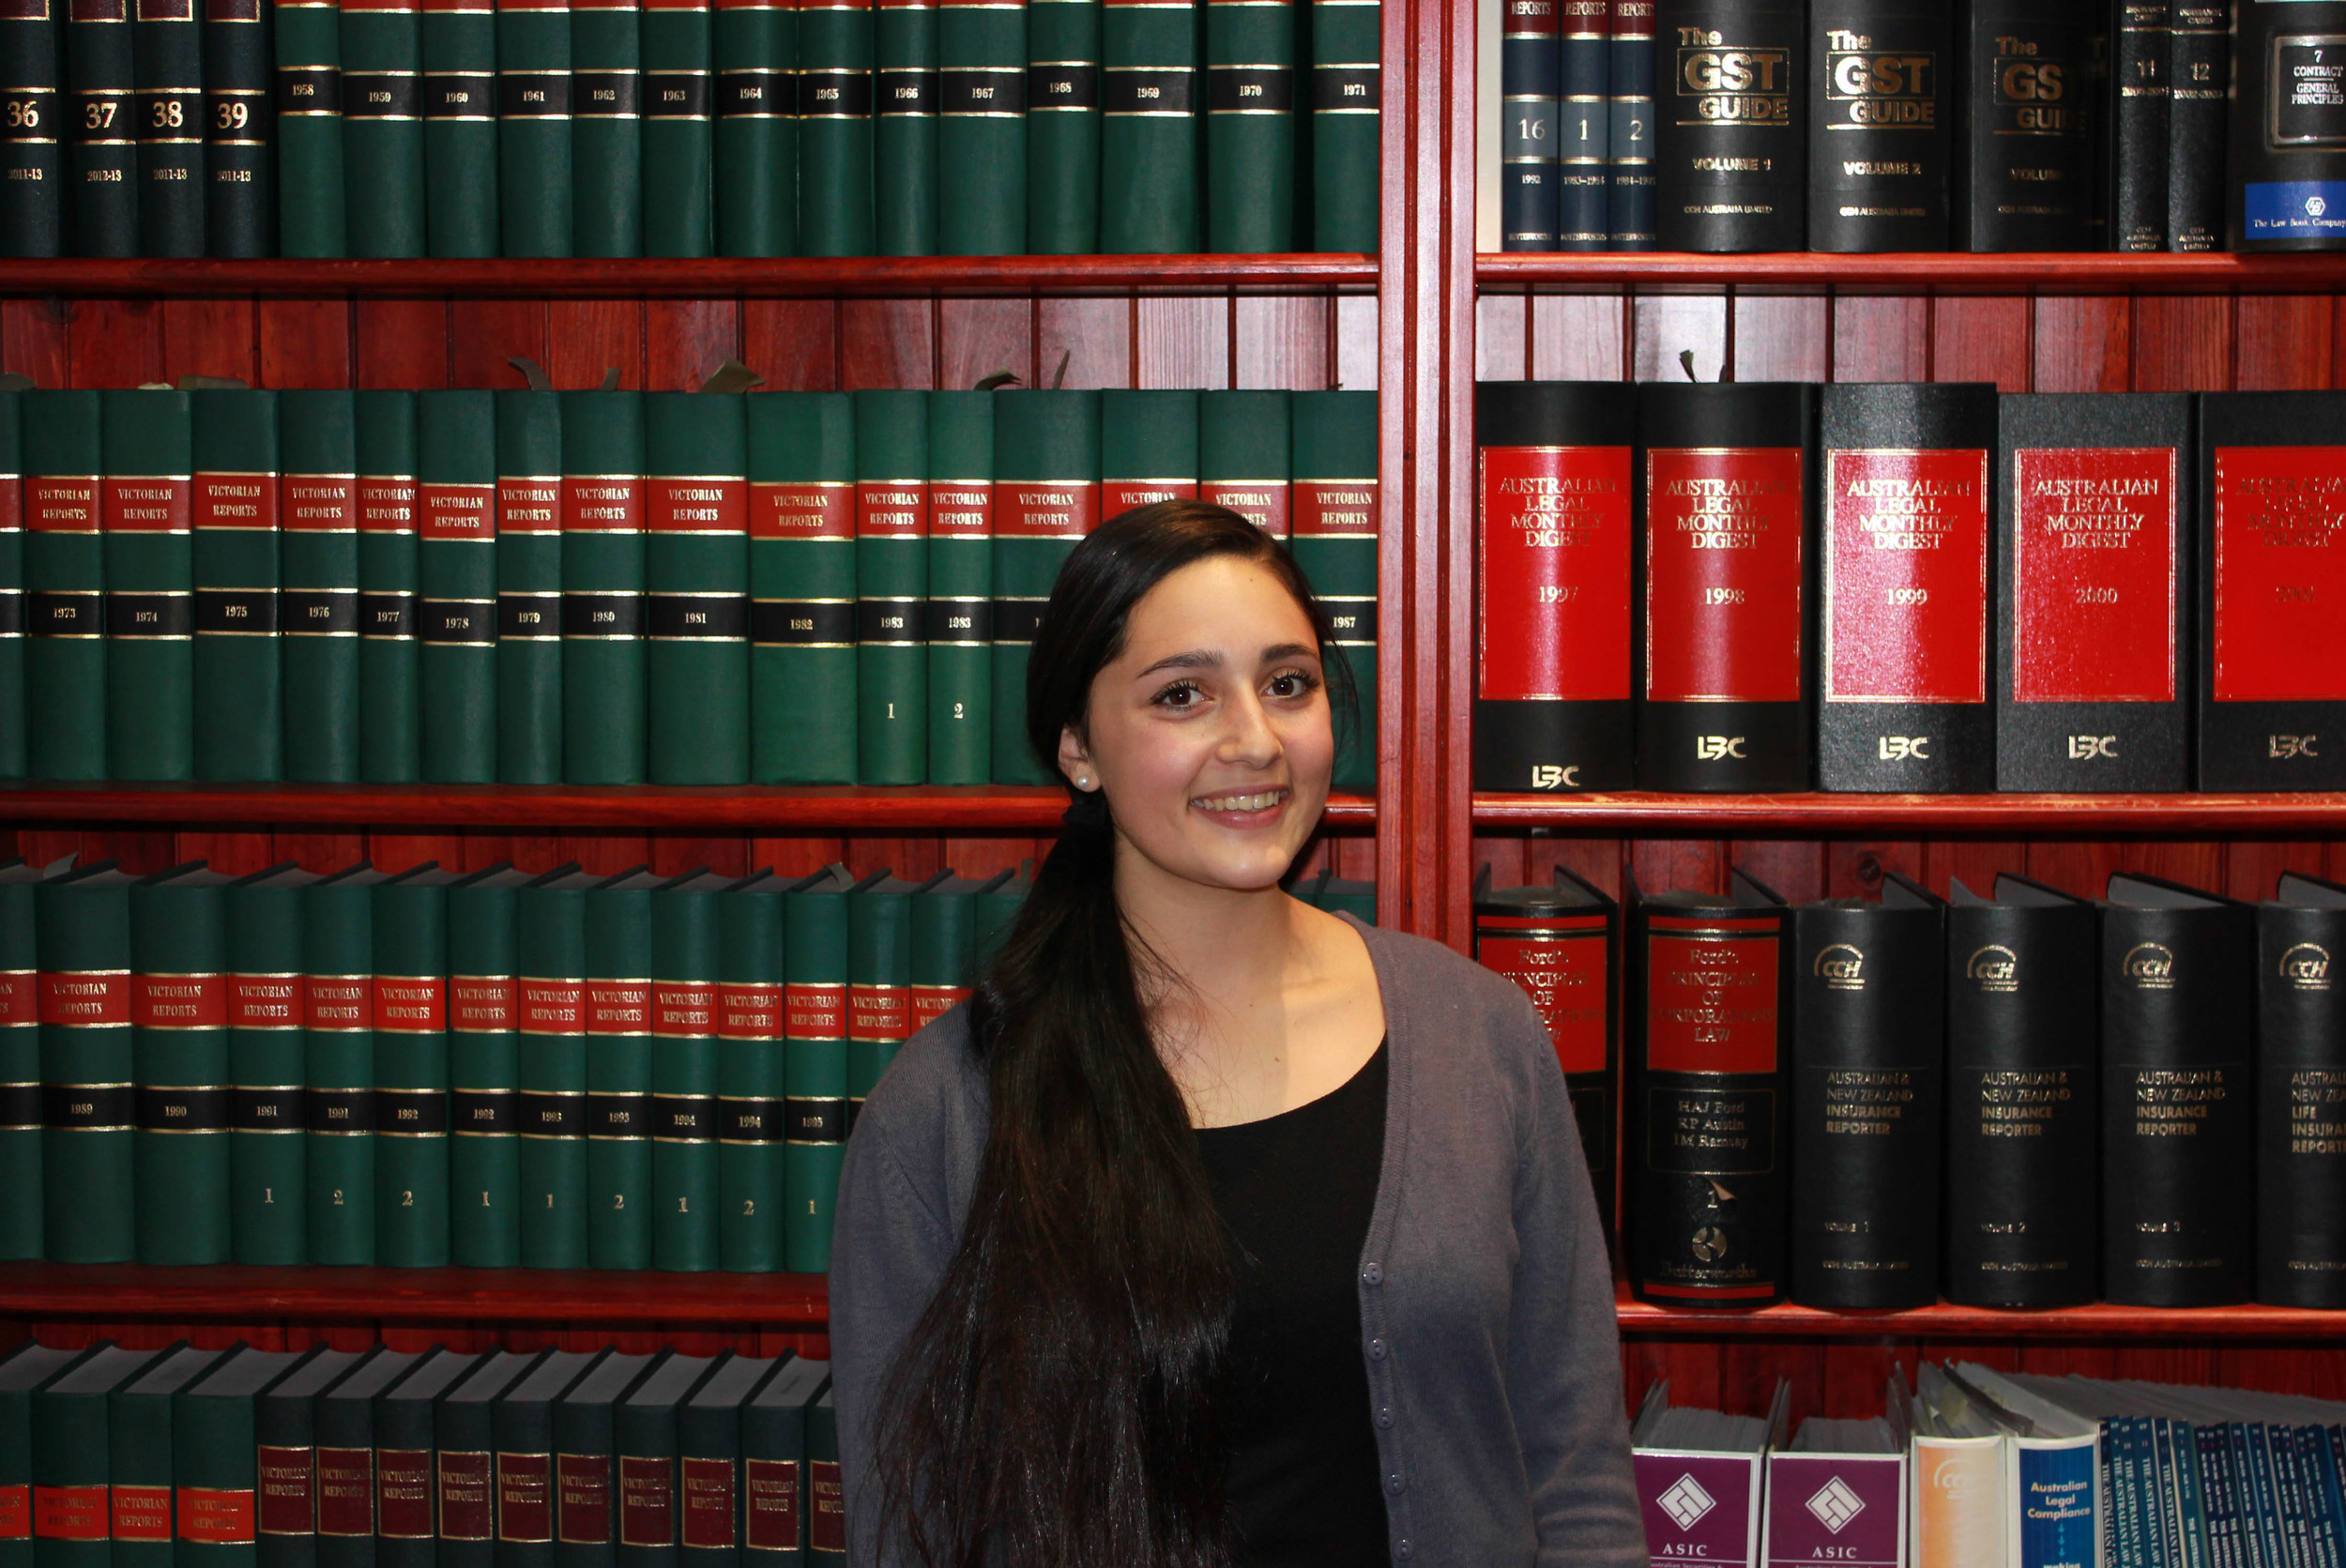 Kristy during work experience at Holley Nethercote Lawyers. Kristy also part of her week with barristers at the Victorian Bar.